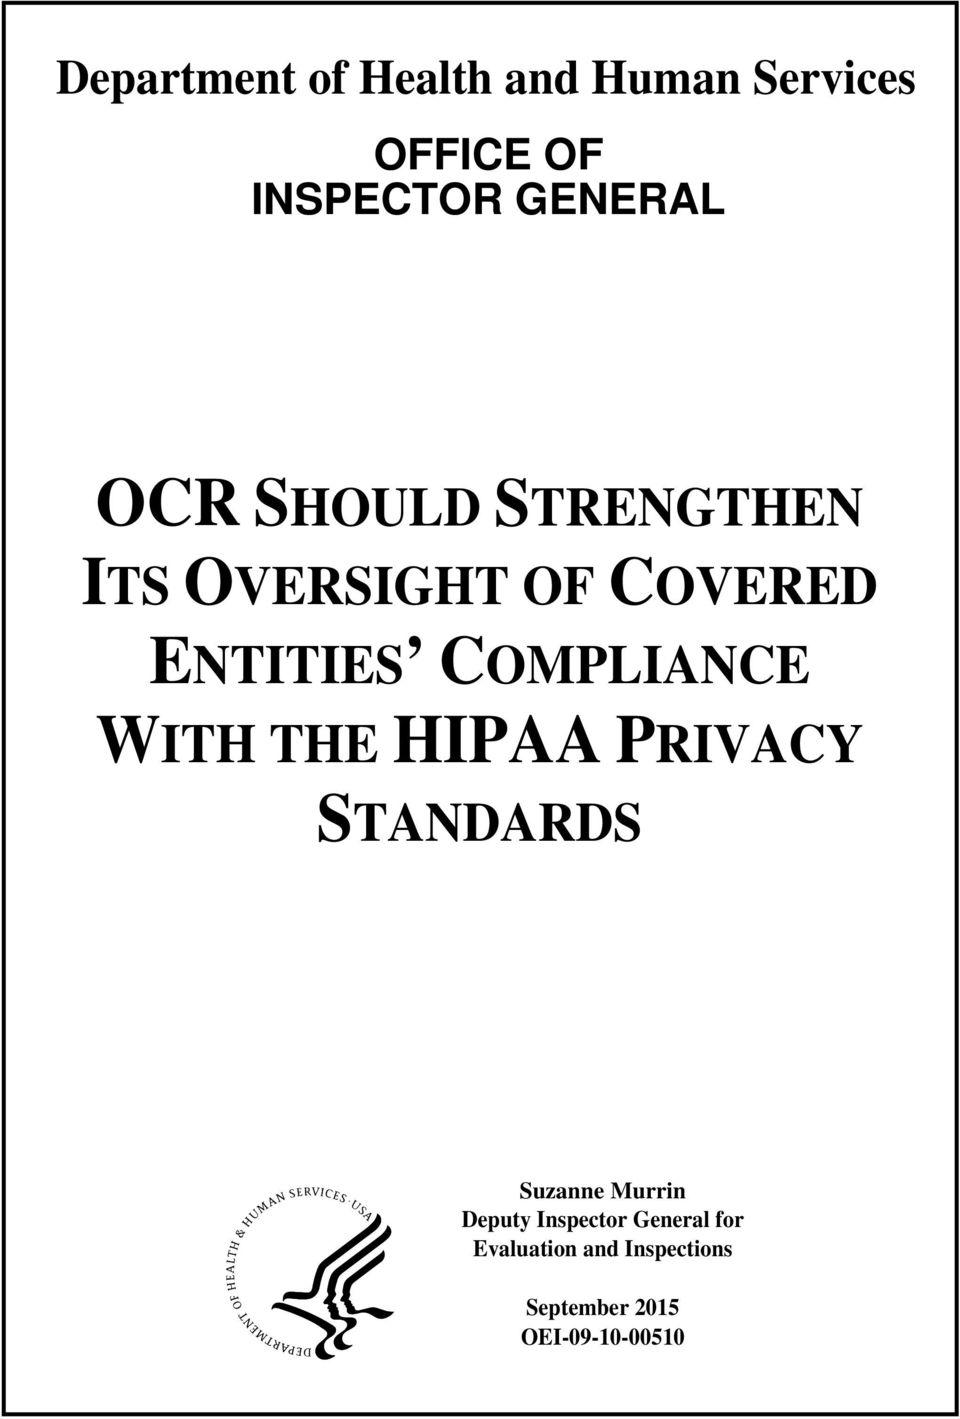 WITH THE HIPAA PRIVACY STANDARDS Suzanne Murrin Deputy Inspector